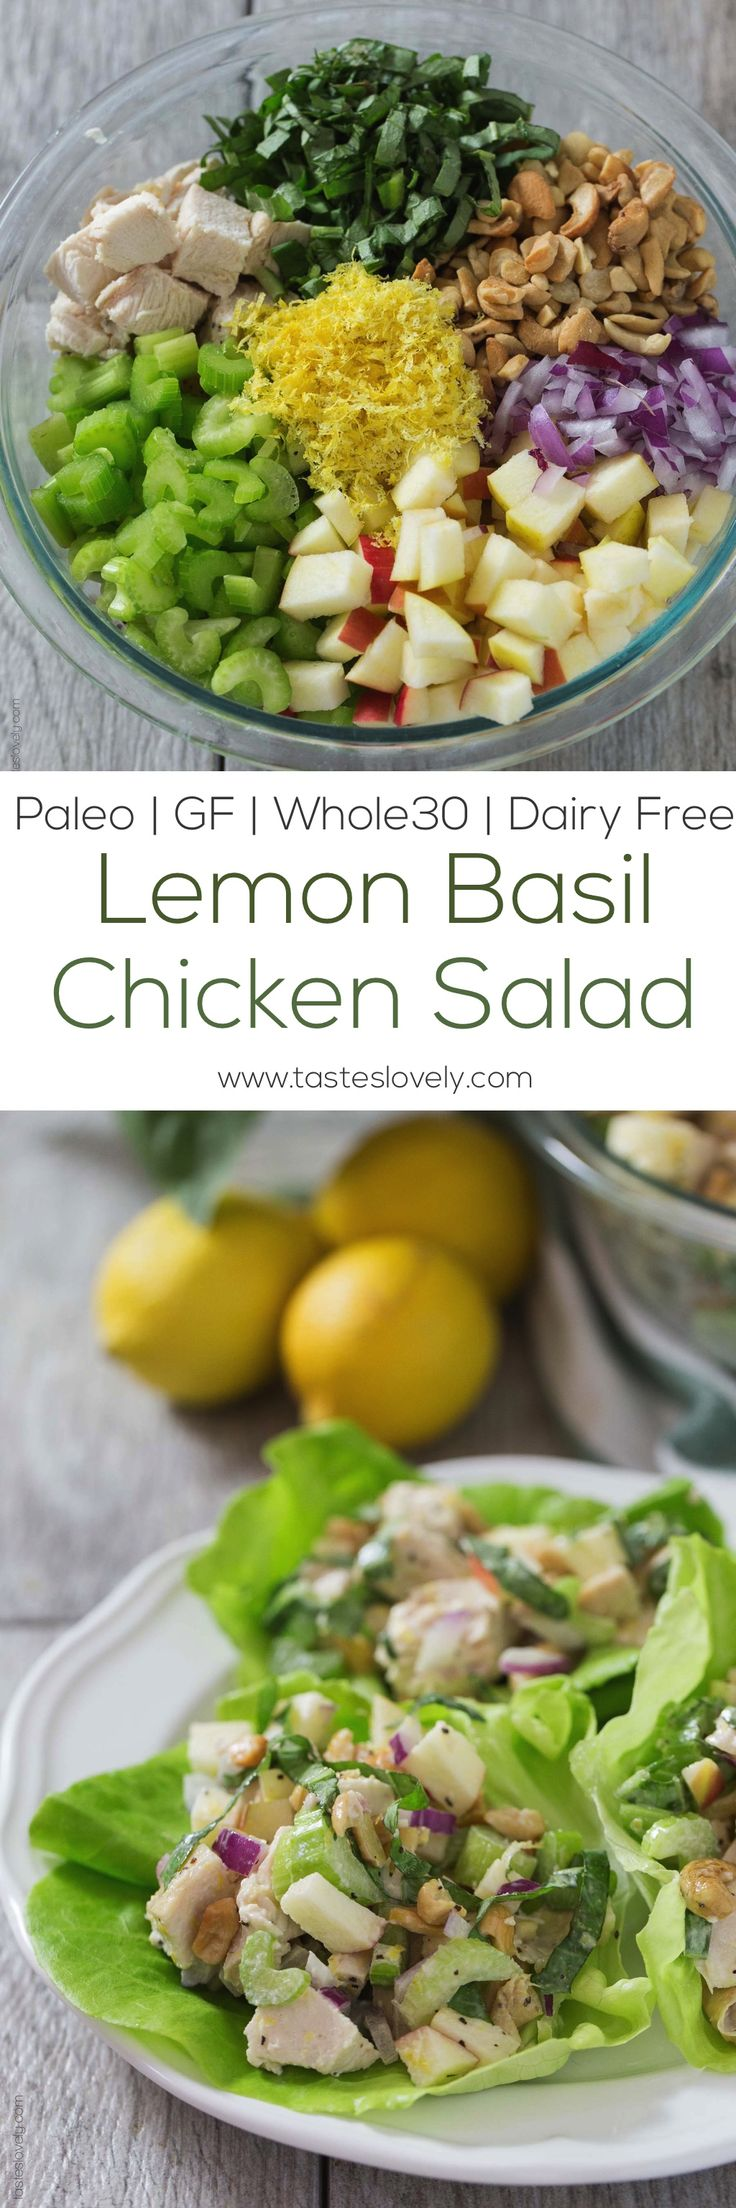 Paleo Lemon Basil Chicken Salad Lettuce Wraps - a light and healthy lunch recipe that is gluten free, whole30, paleo and dairy free!